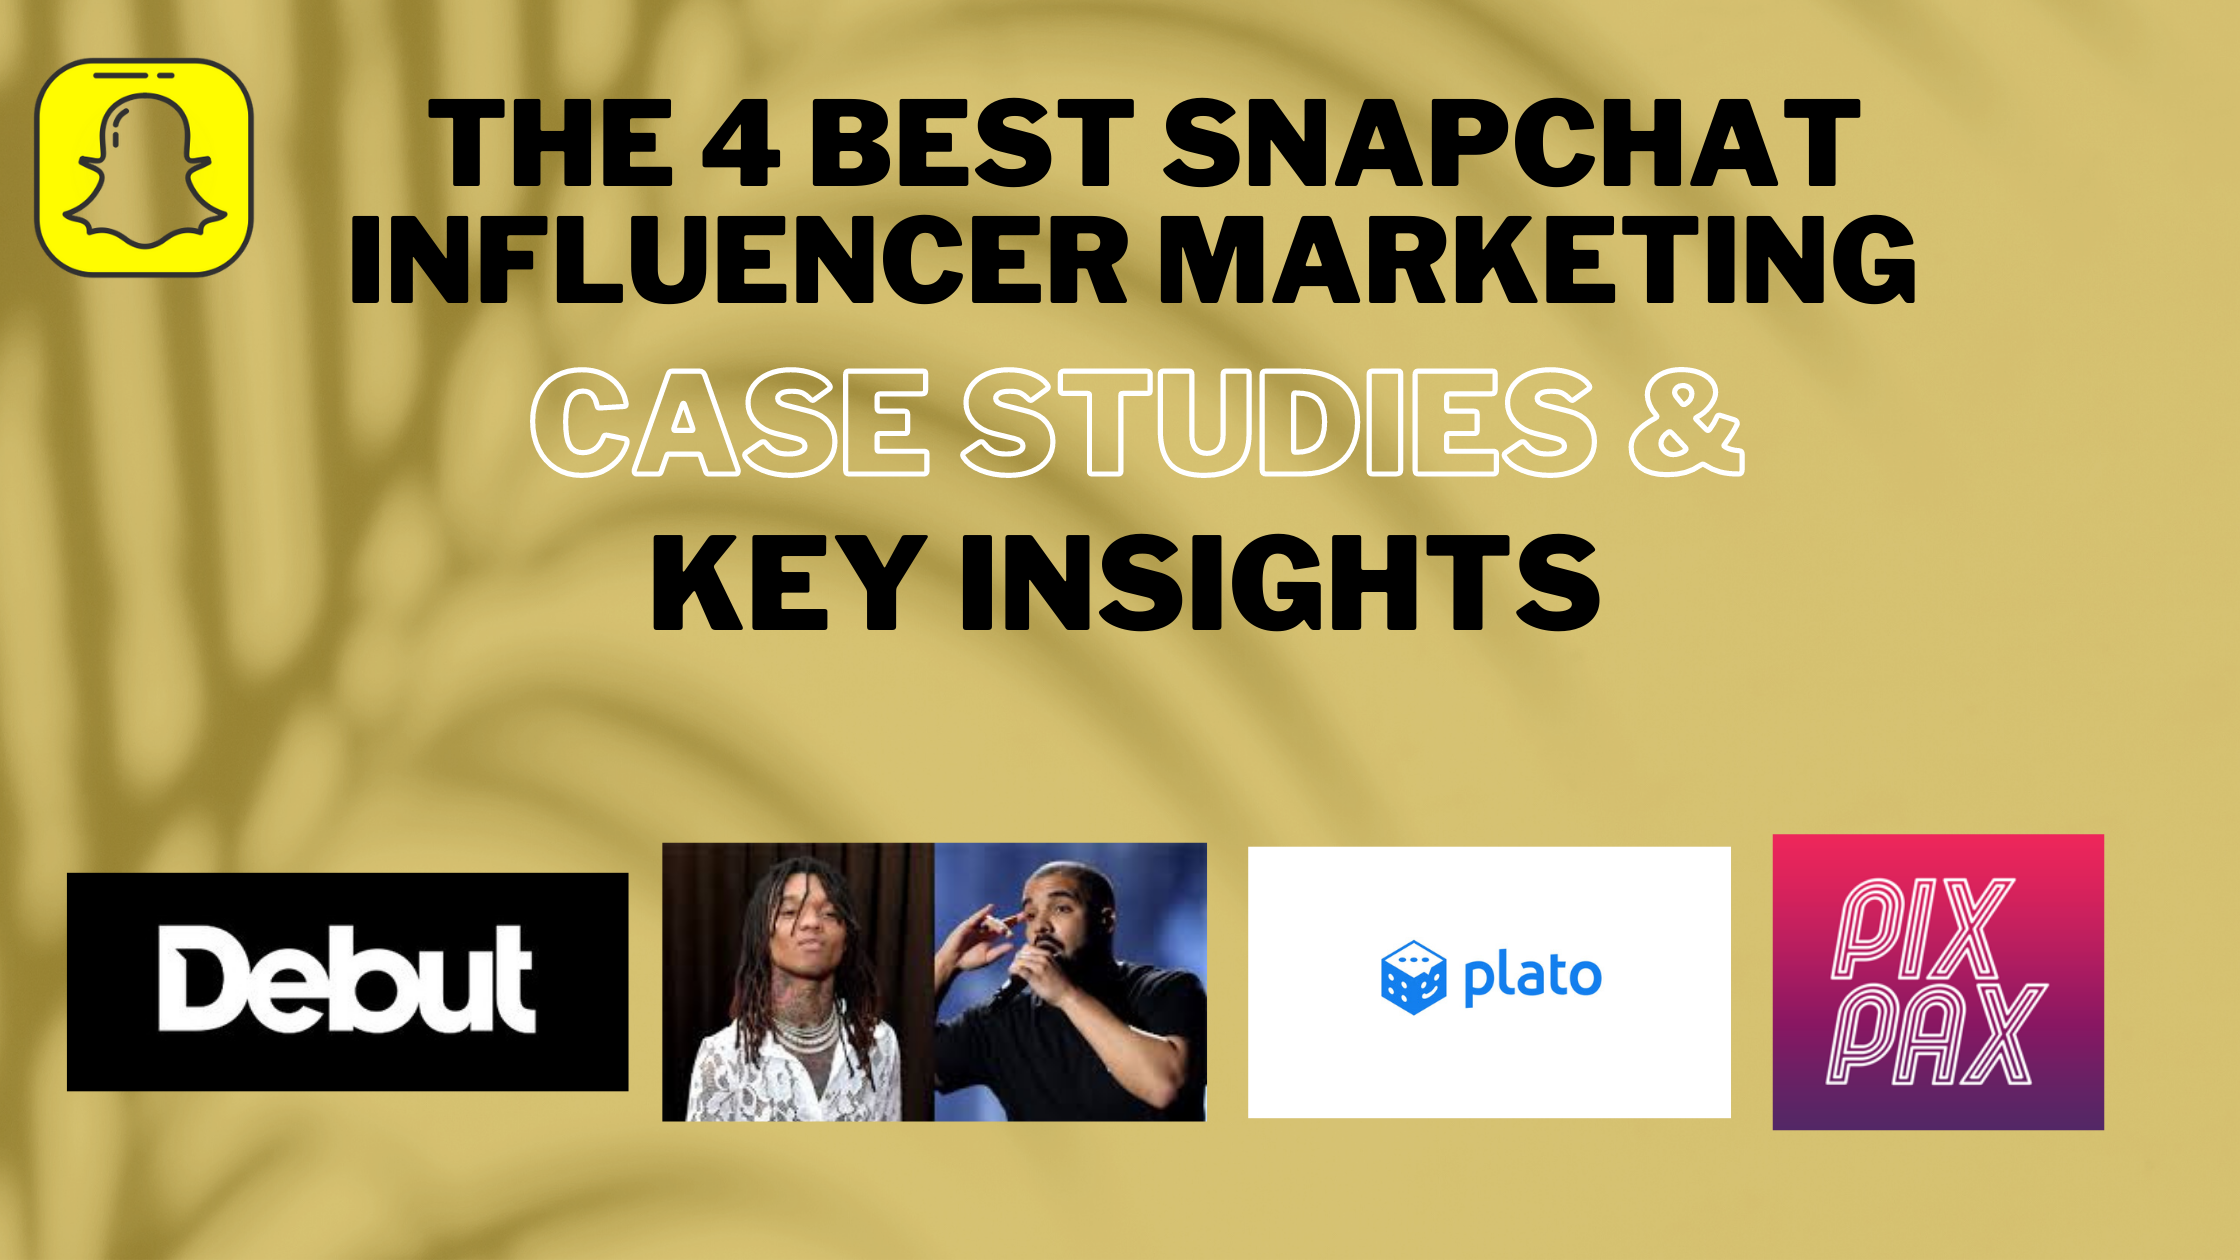 Top 4 Snapchat Influencer Marketing Case Studies And Key Insights